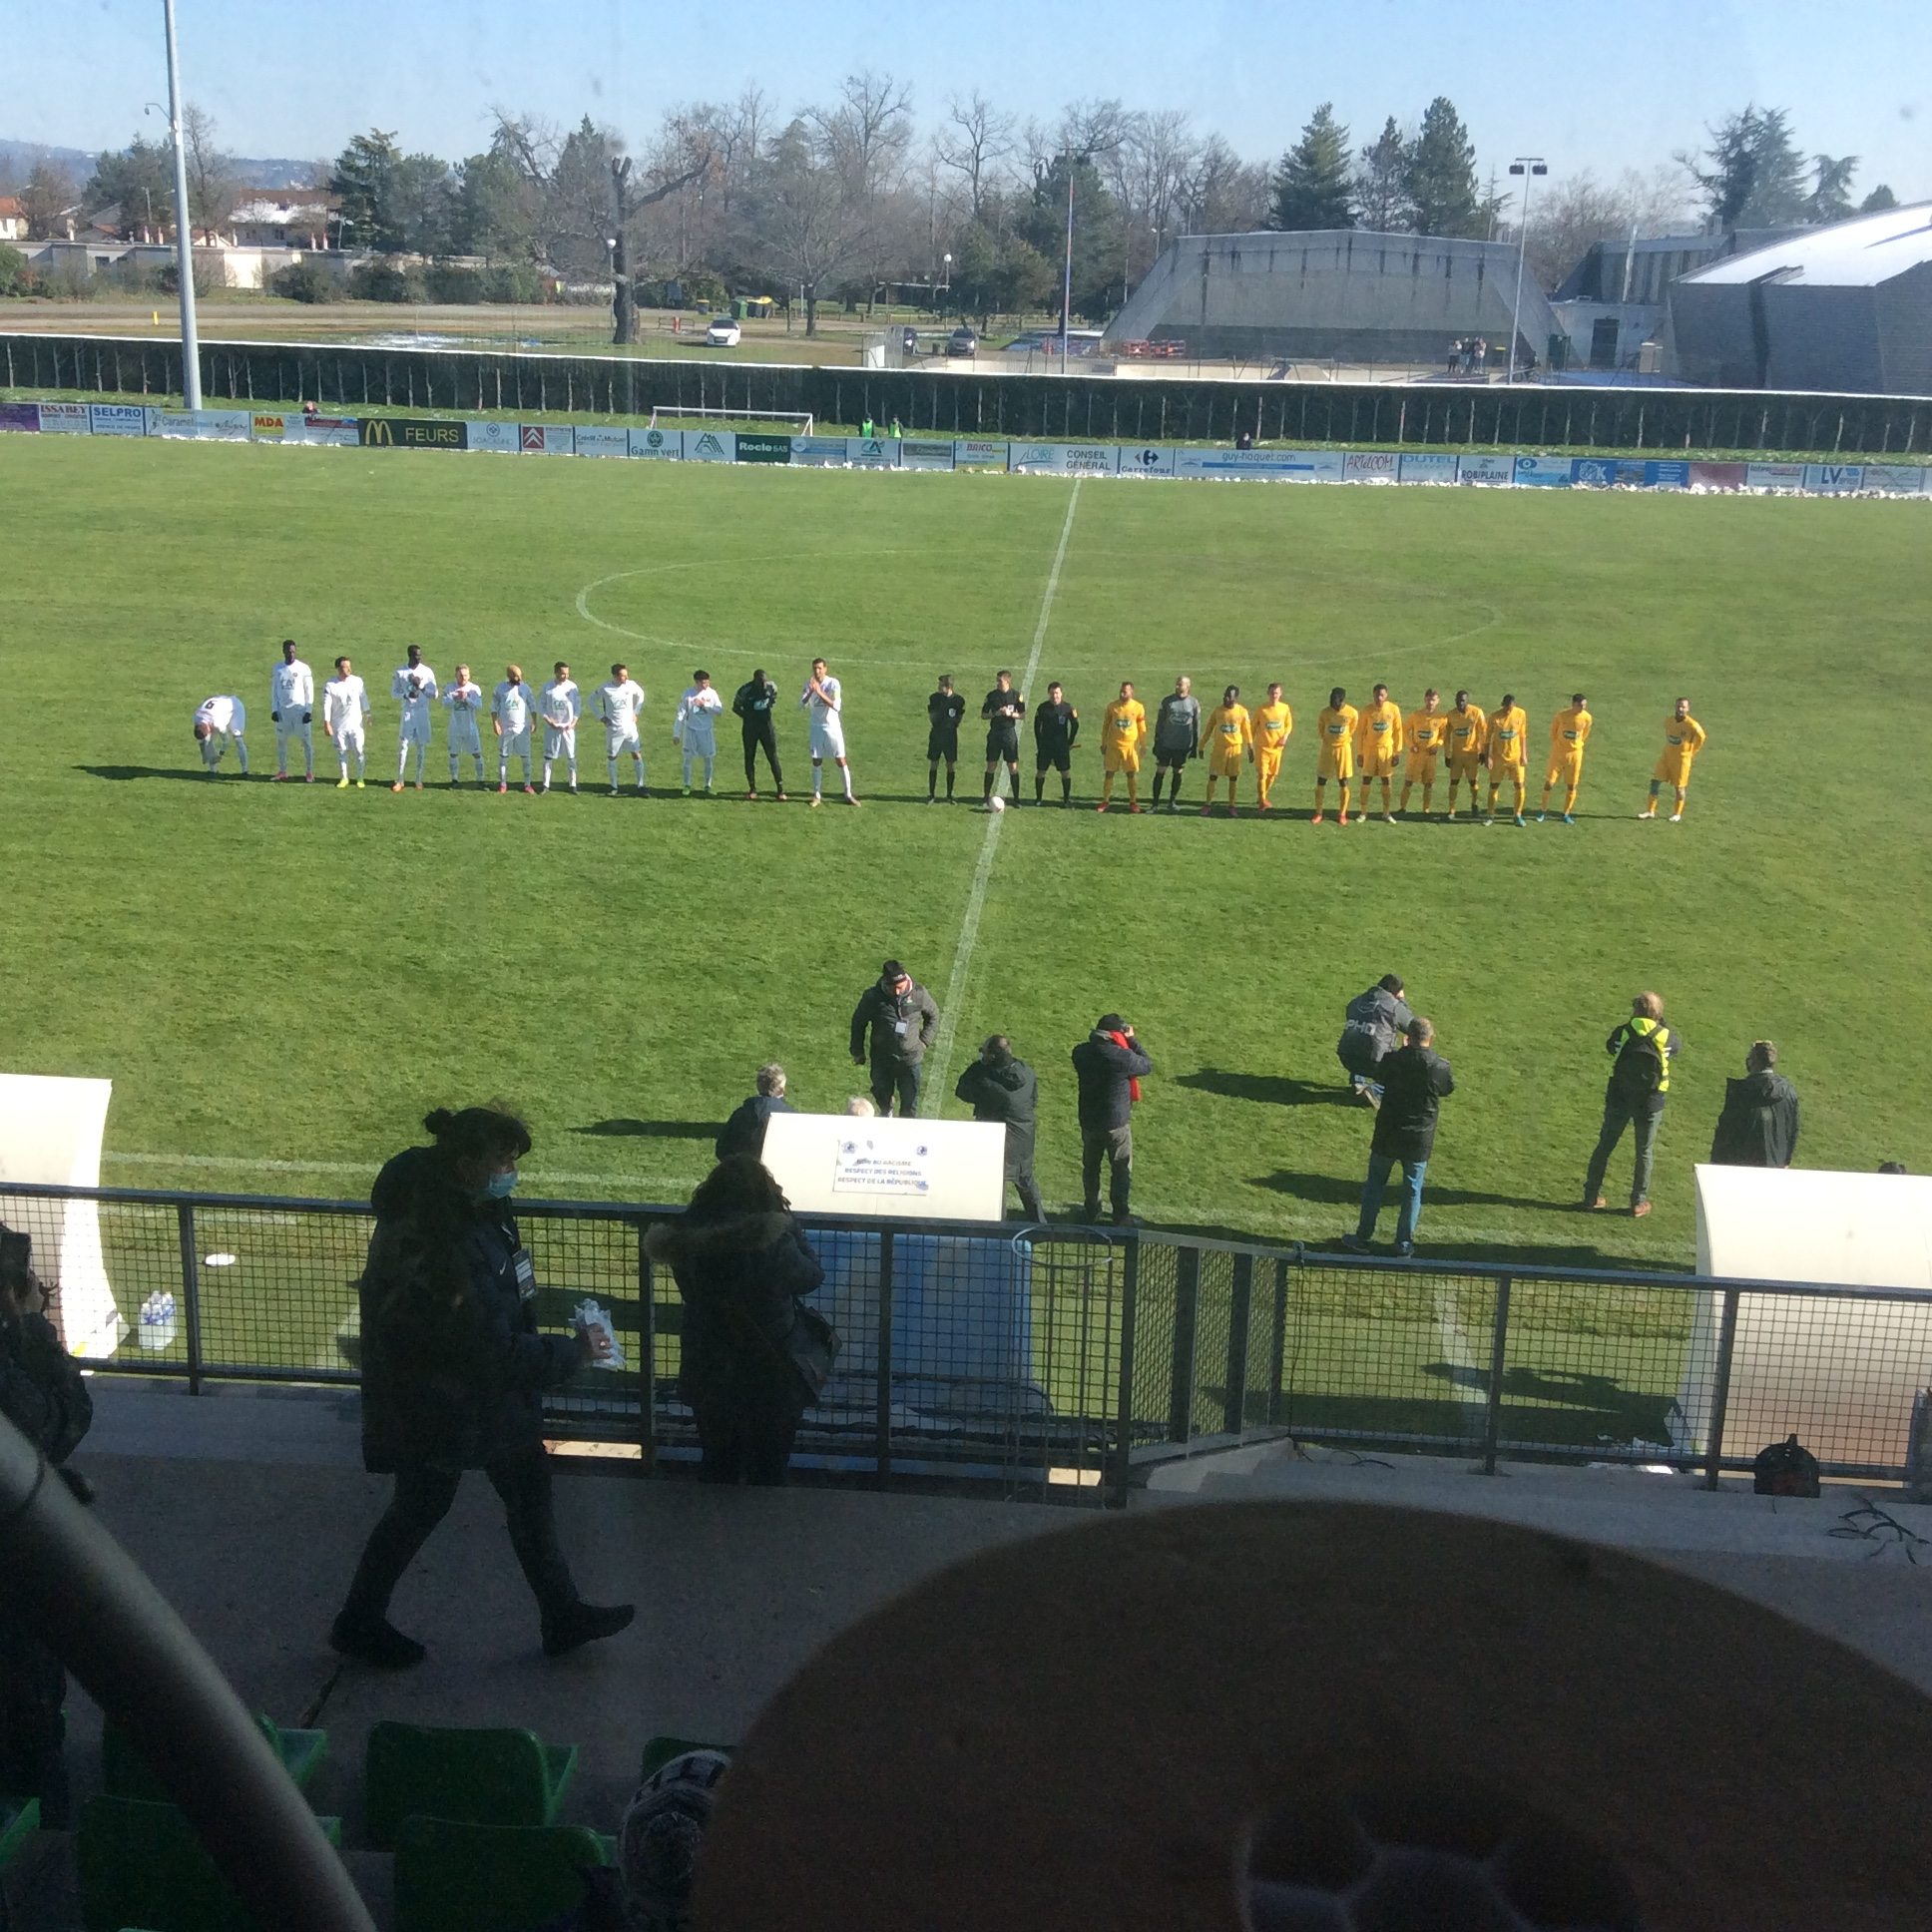 coupe de France 8eme tours us feurs 0-0 le puy foot 43 (tirs au but 3-4) le puy qualifie pour les 32 eme de finale